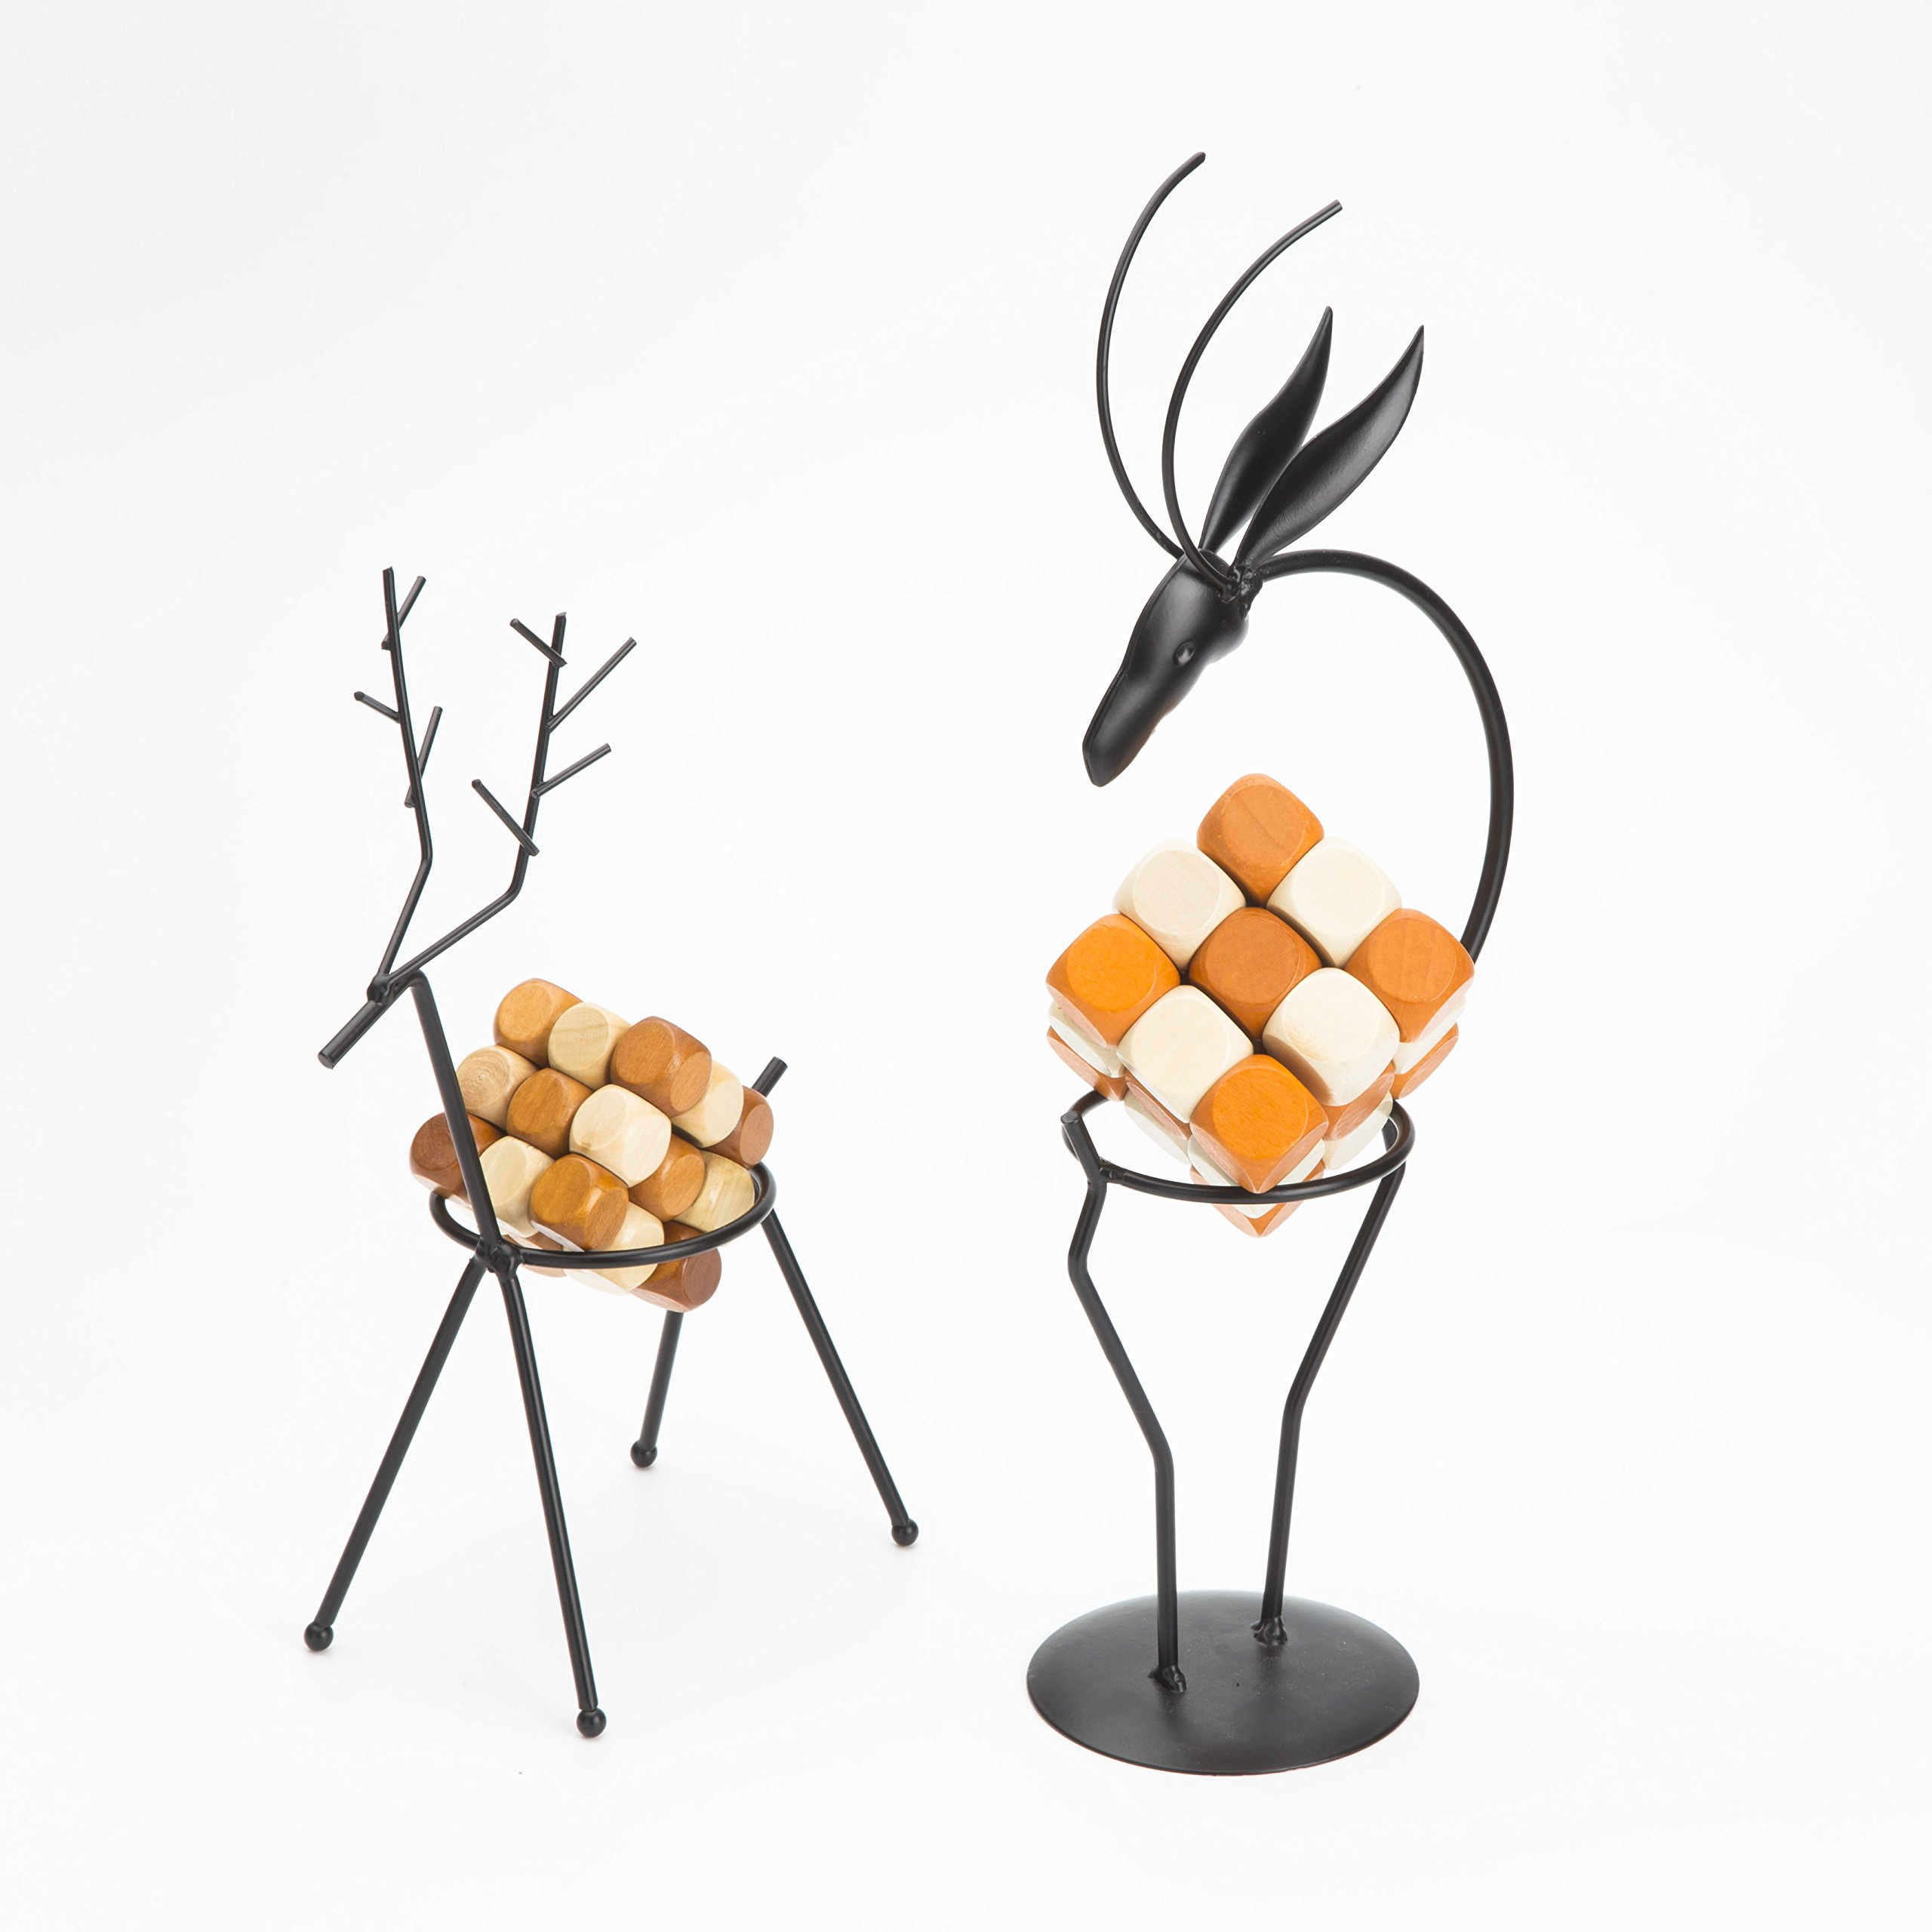 Metal Handicraft Stand Deer with European Elements Minimalist Design ,2 Pieces Deer and 2 Pieces ''Drgon Wagging Tail'' Brain Teaser Toys ,Best Gift for Kids/Adults by Like KongMing (Image #2)